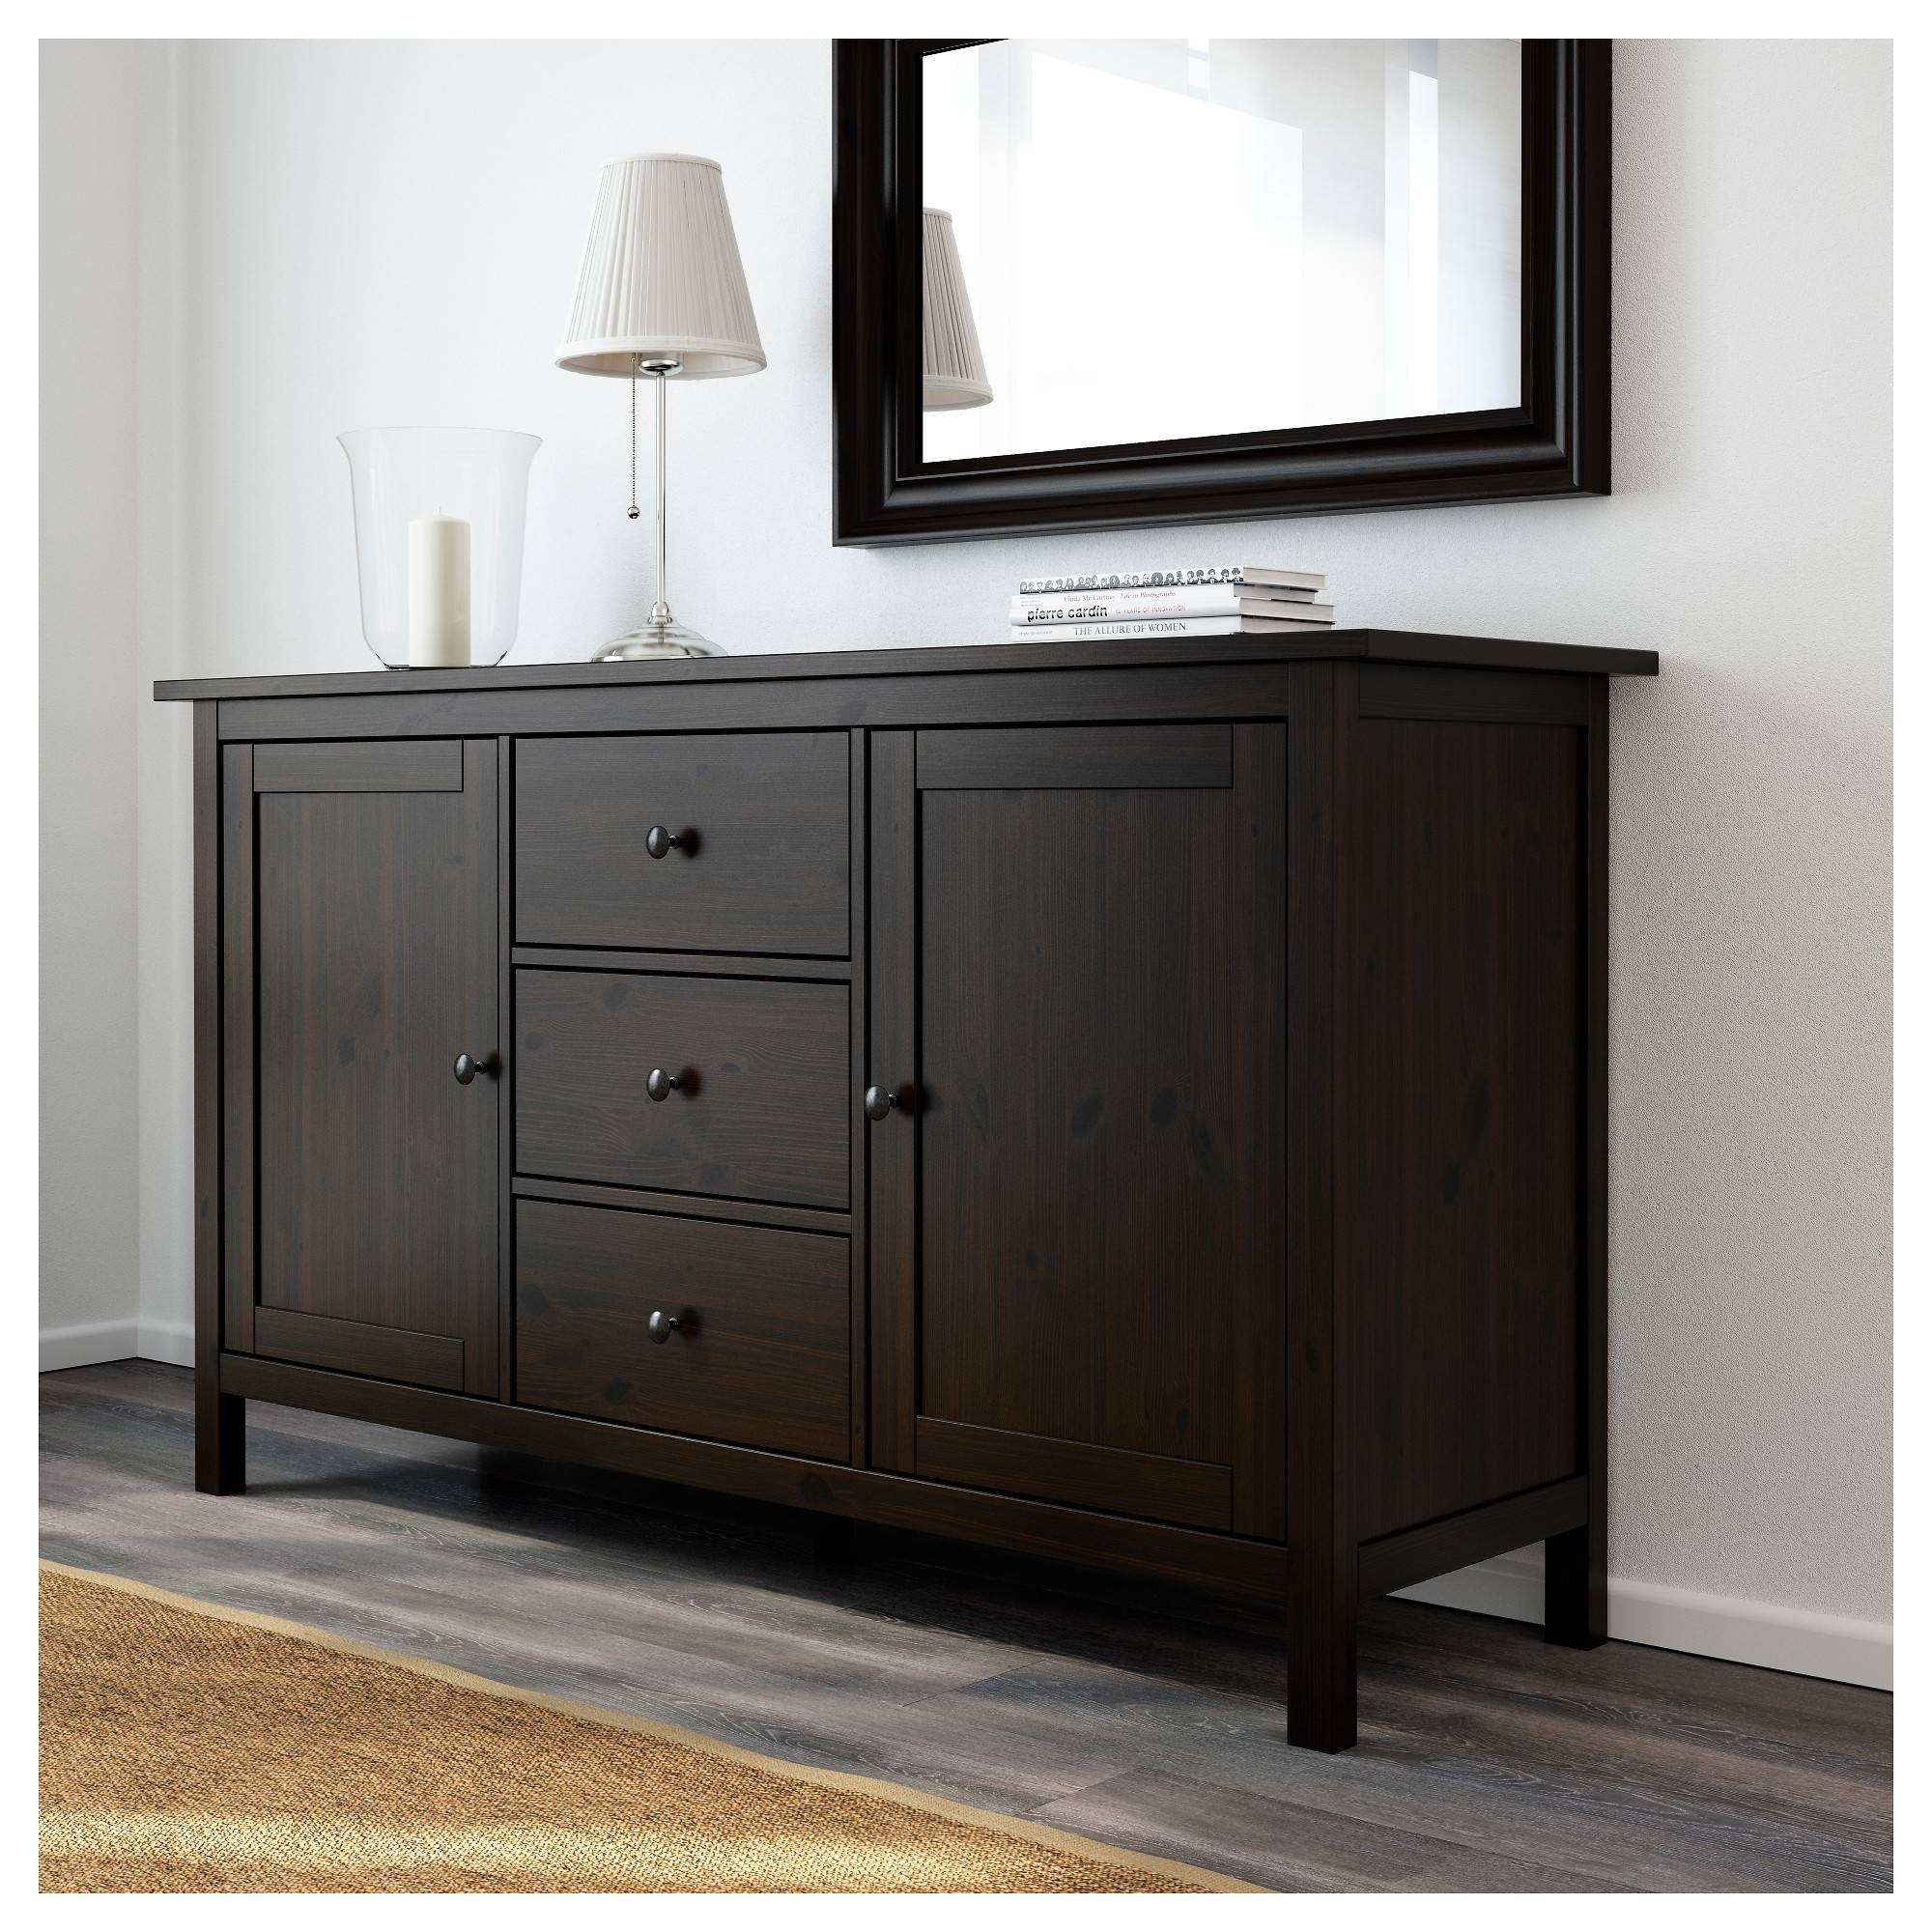 Hemnes Sideboard - Black-Brown - Ikea intended for Dark Brown Sideboards (Image 16 of 30)